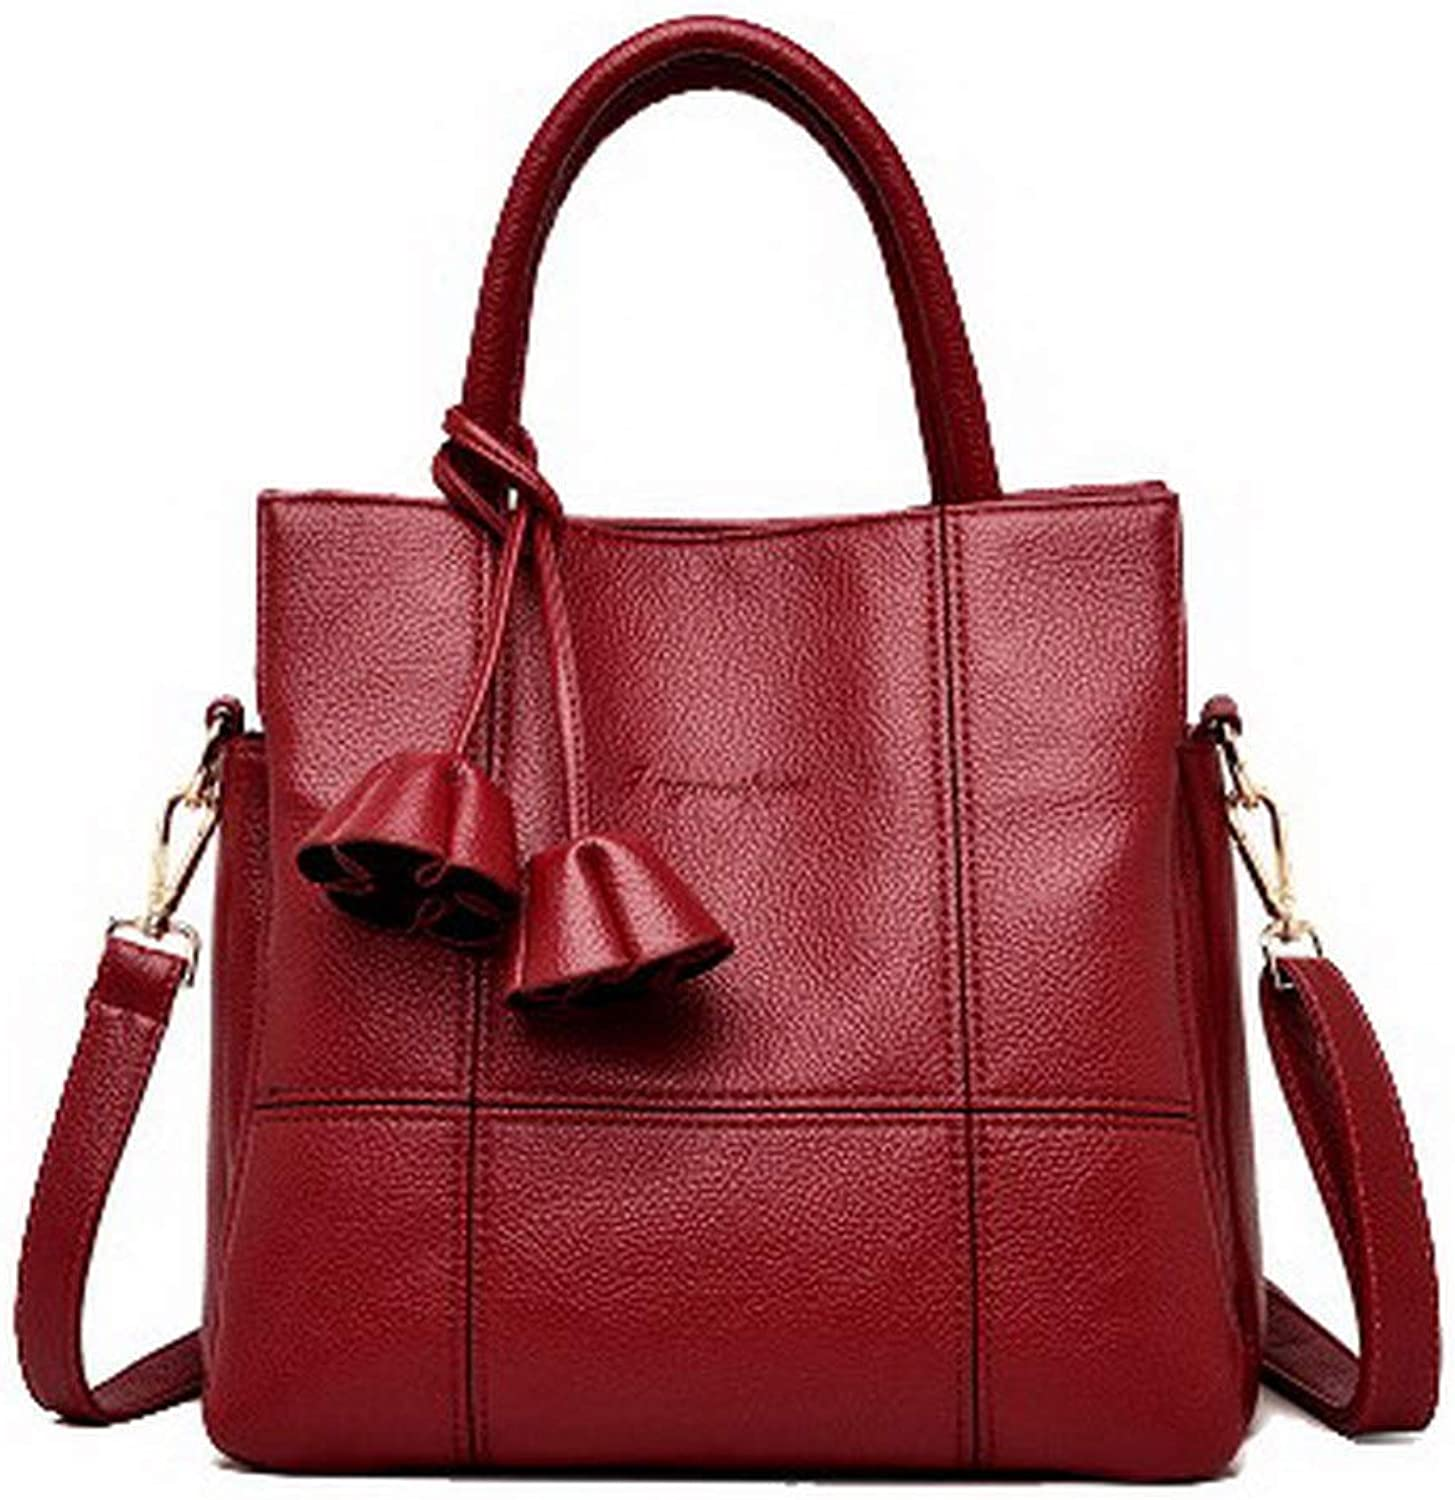 AmoonyFashion Women's Tote Bags Casual ToteStyle Shopping Pu Crossbody Bags,BUTBT191879